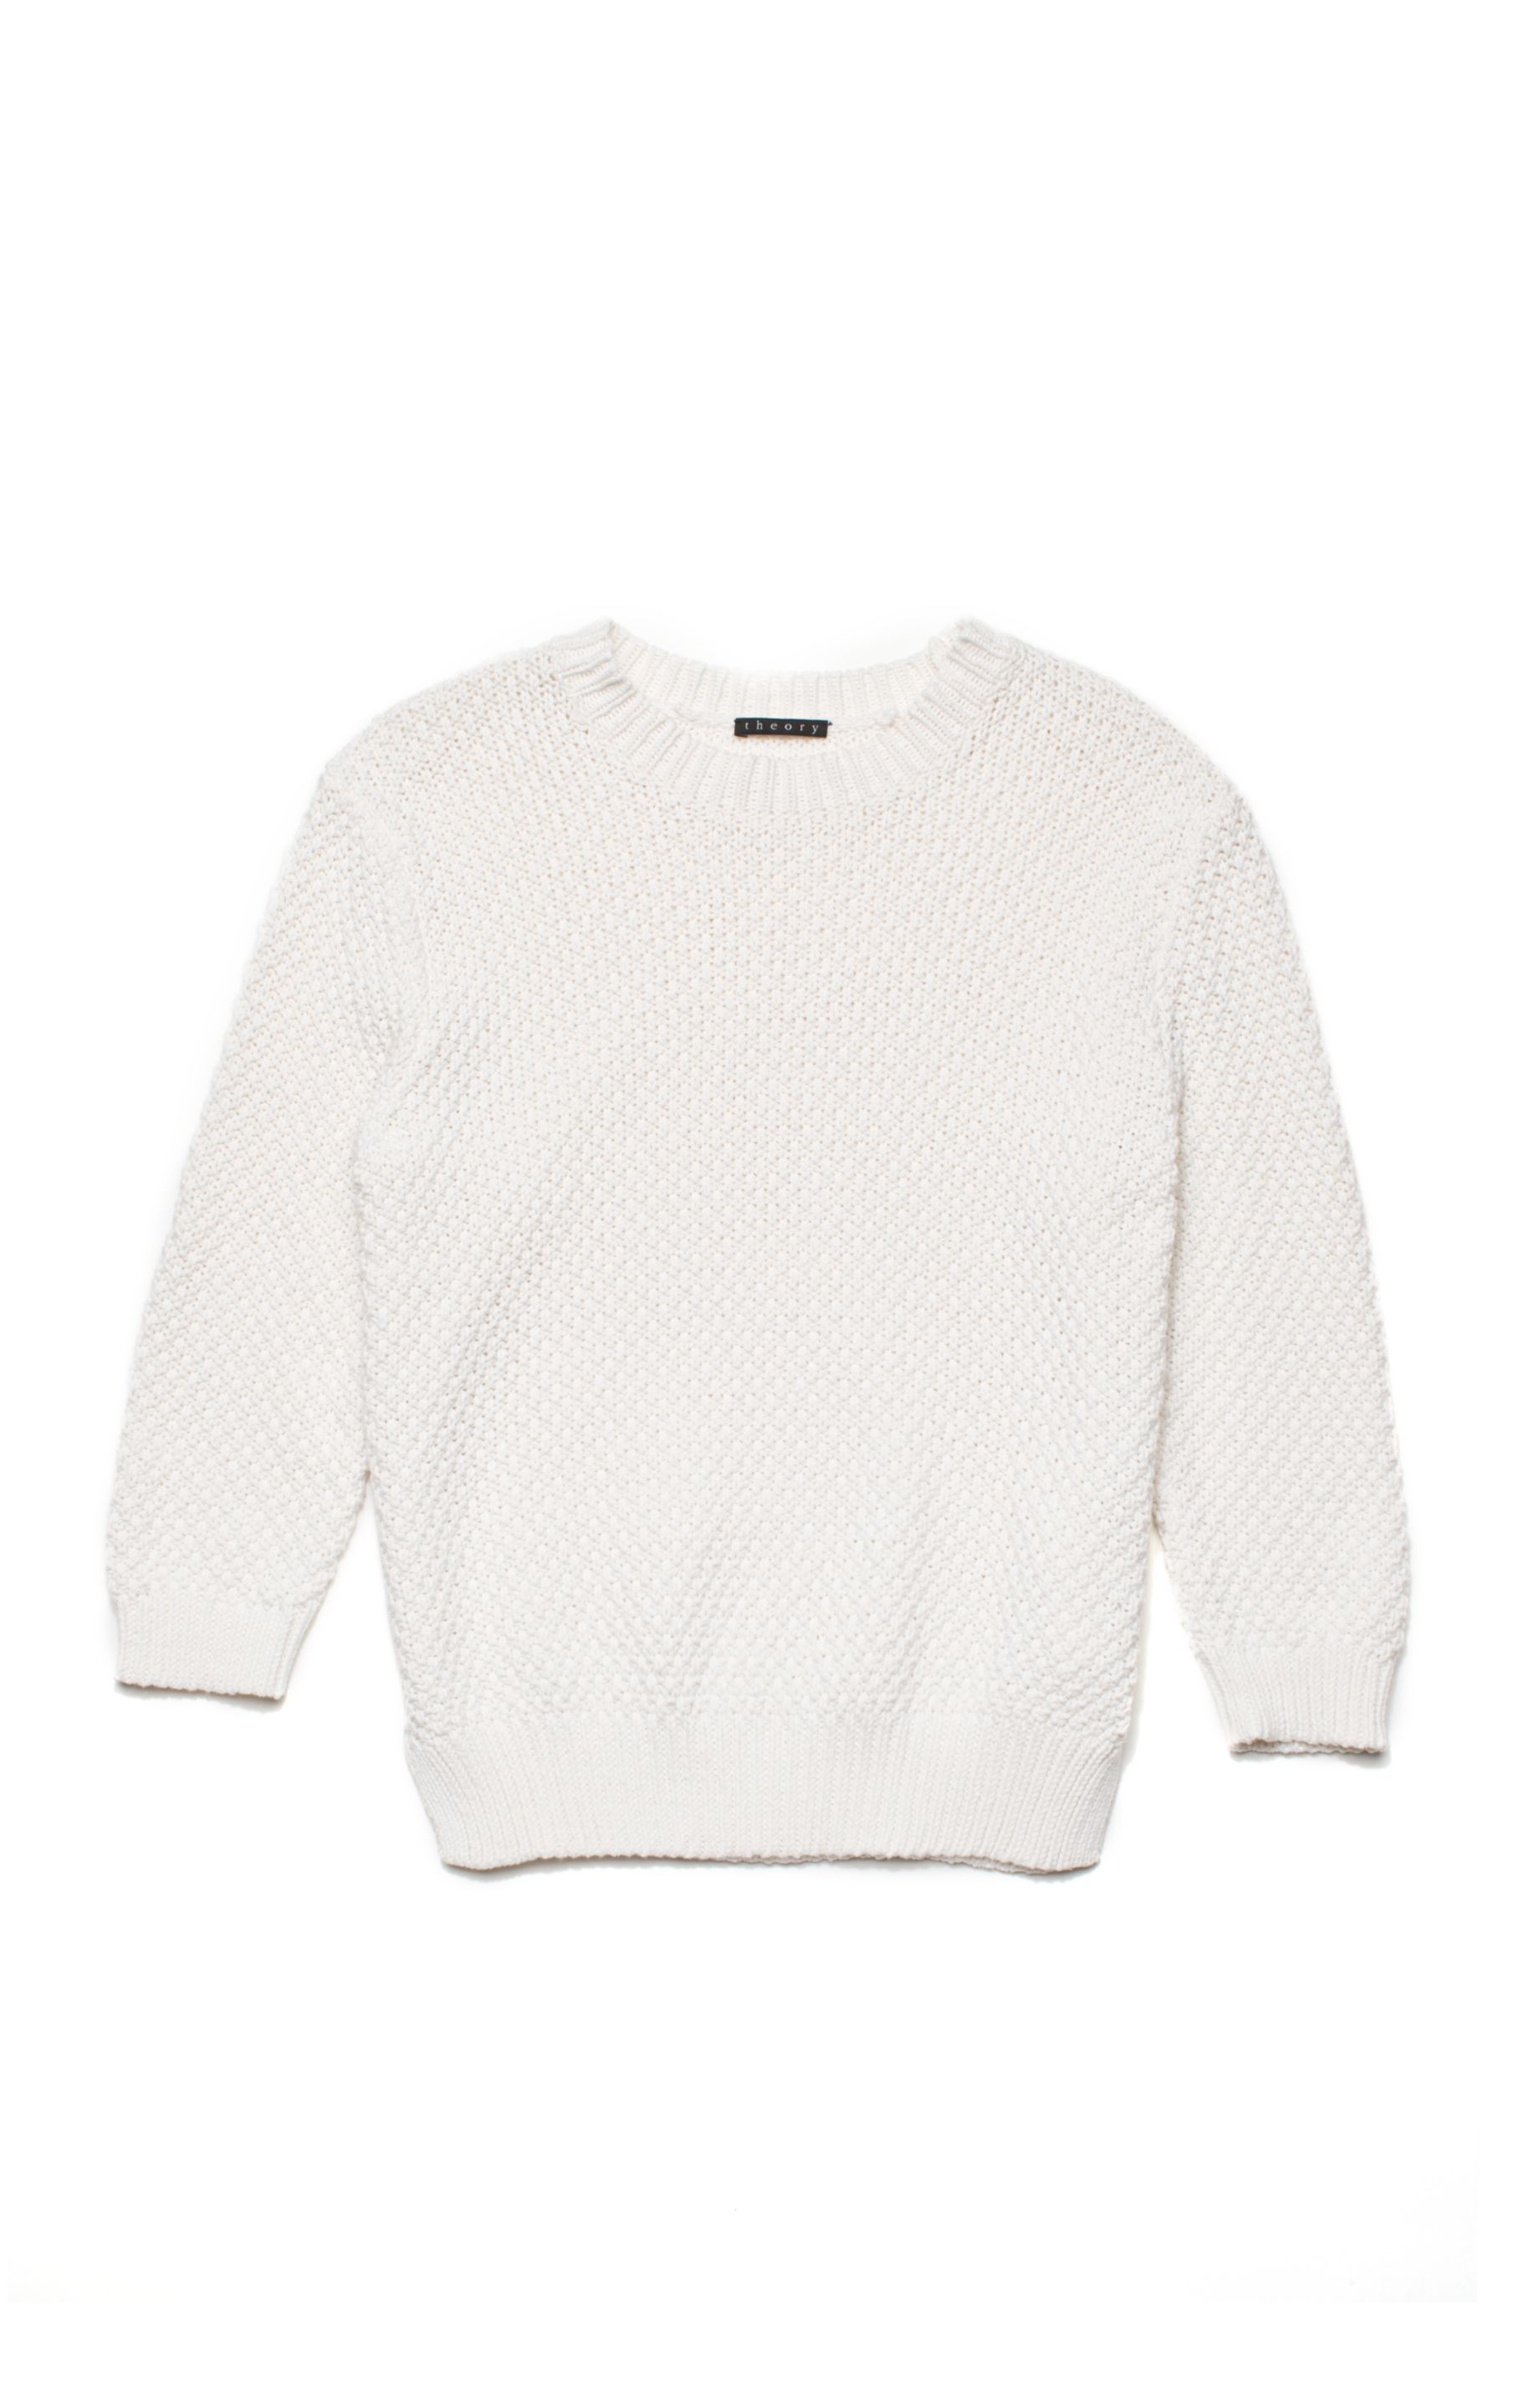 Theory Rainee Cotton Cashmere Sweater in White | Lyst